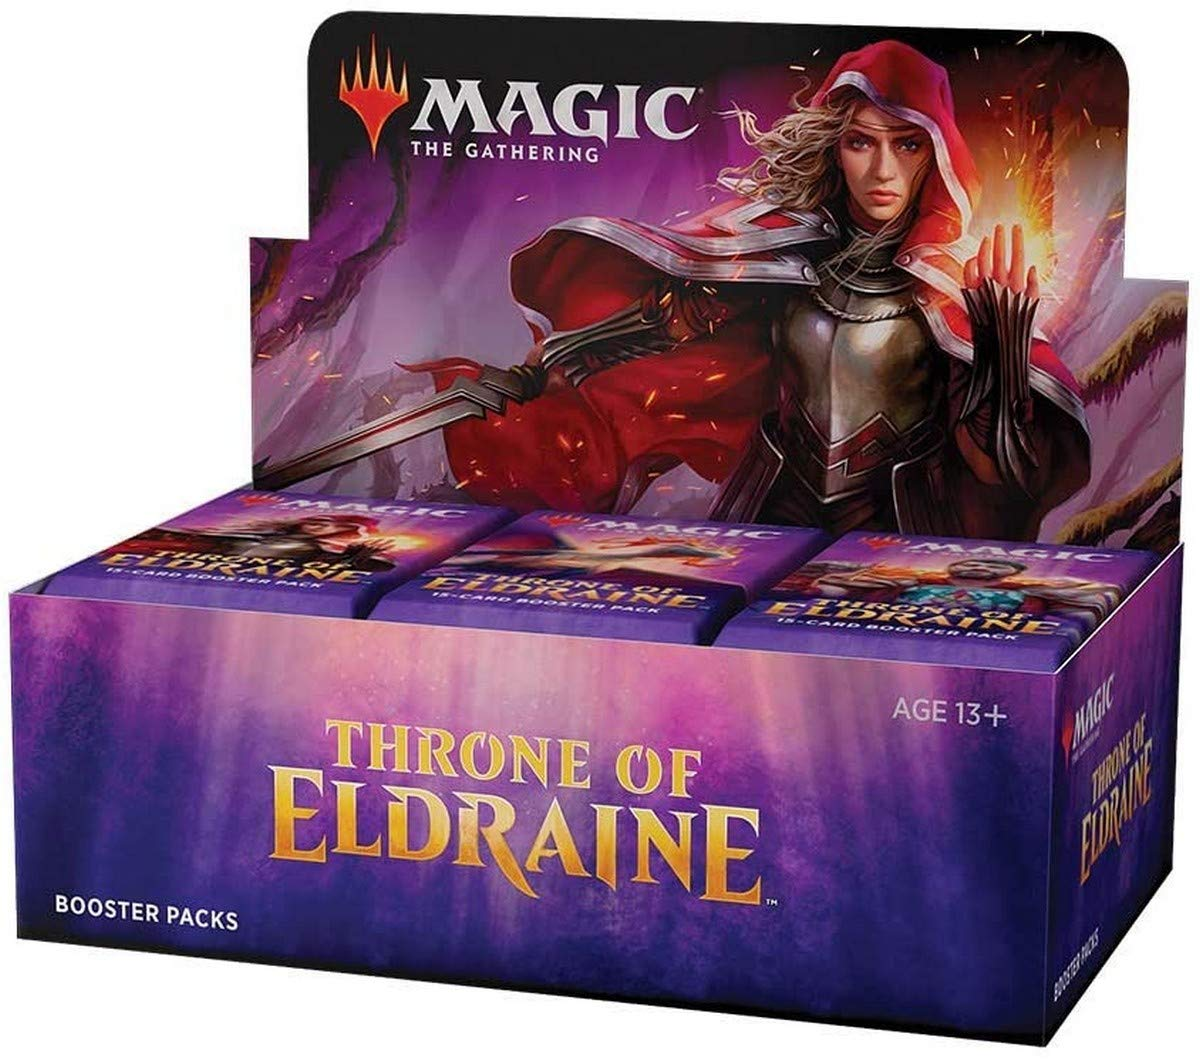 Magic: The Gathering Throne of Eldraine Booster Box | 36 Booster Pack (540 Cards) | Factory Sealed